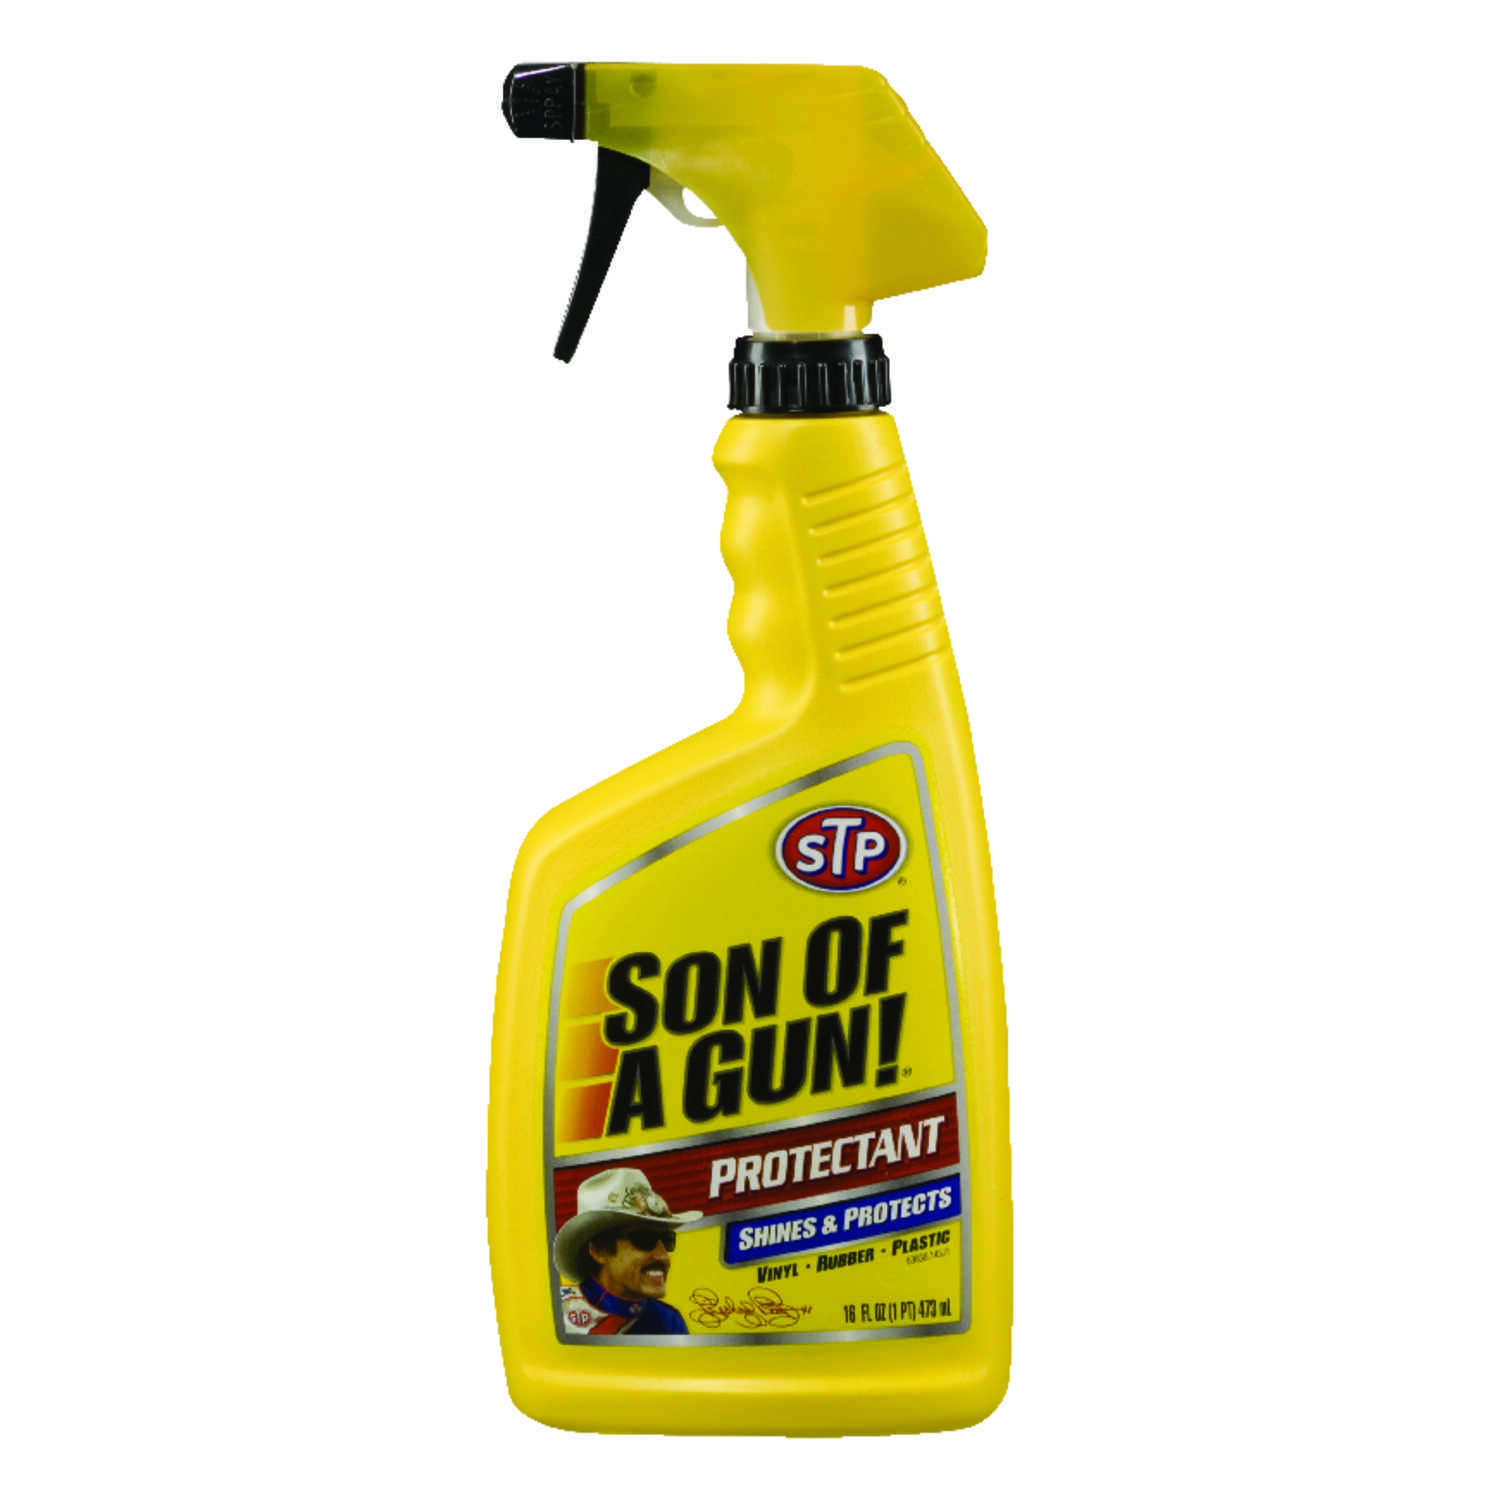 Stp Son Of A Gun Leather Protectant 16 Oz Bottle Ace Hardware